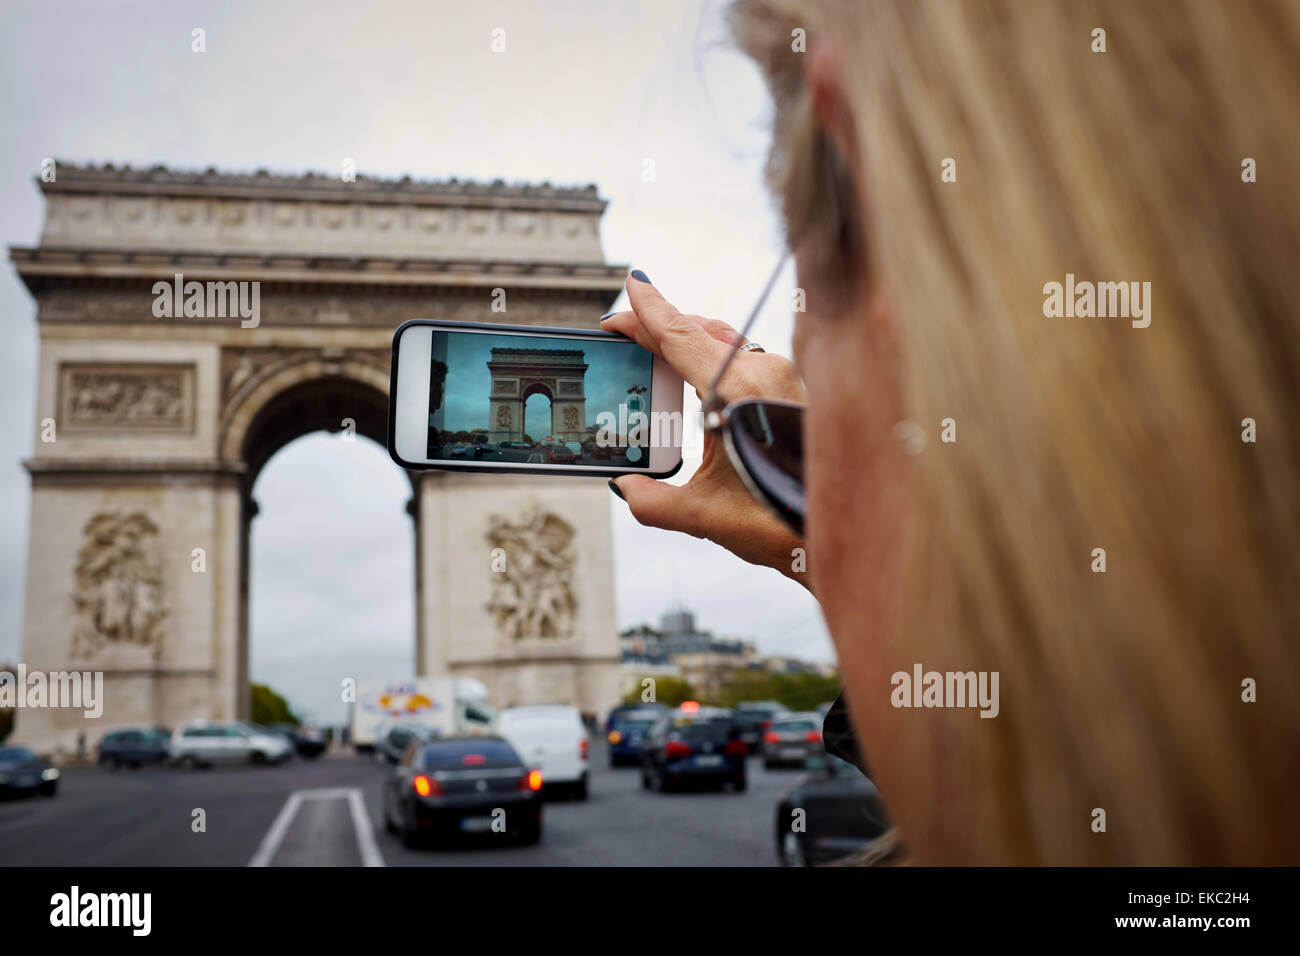 Woman taking photo of the Arc de Triomphe on phone, Paris, France - Stock Image